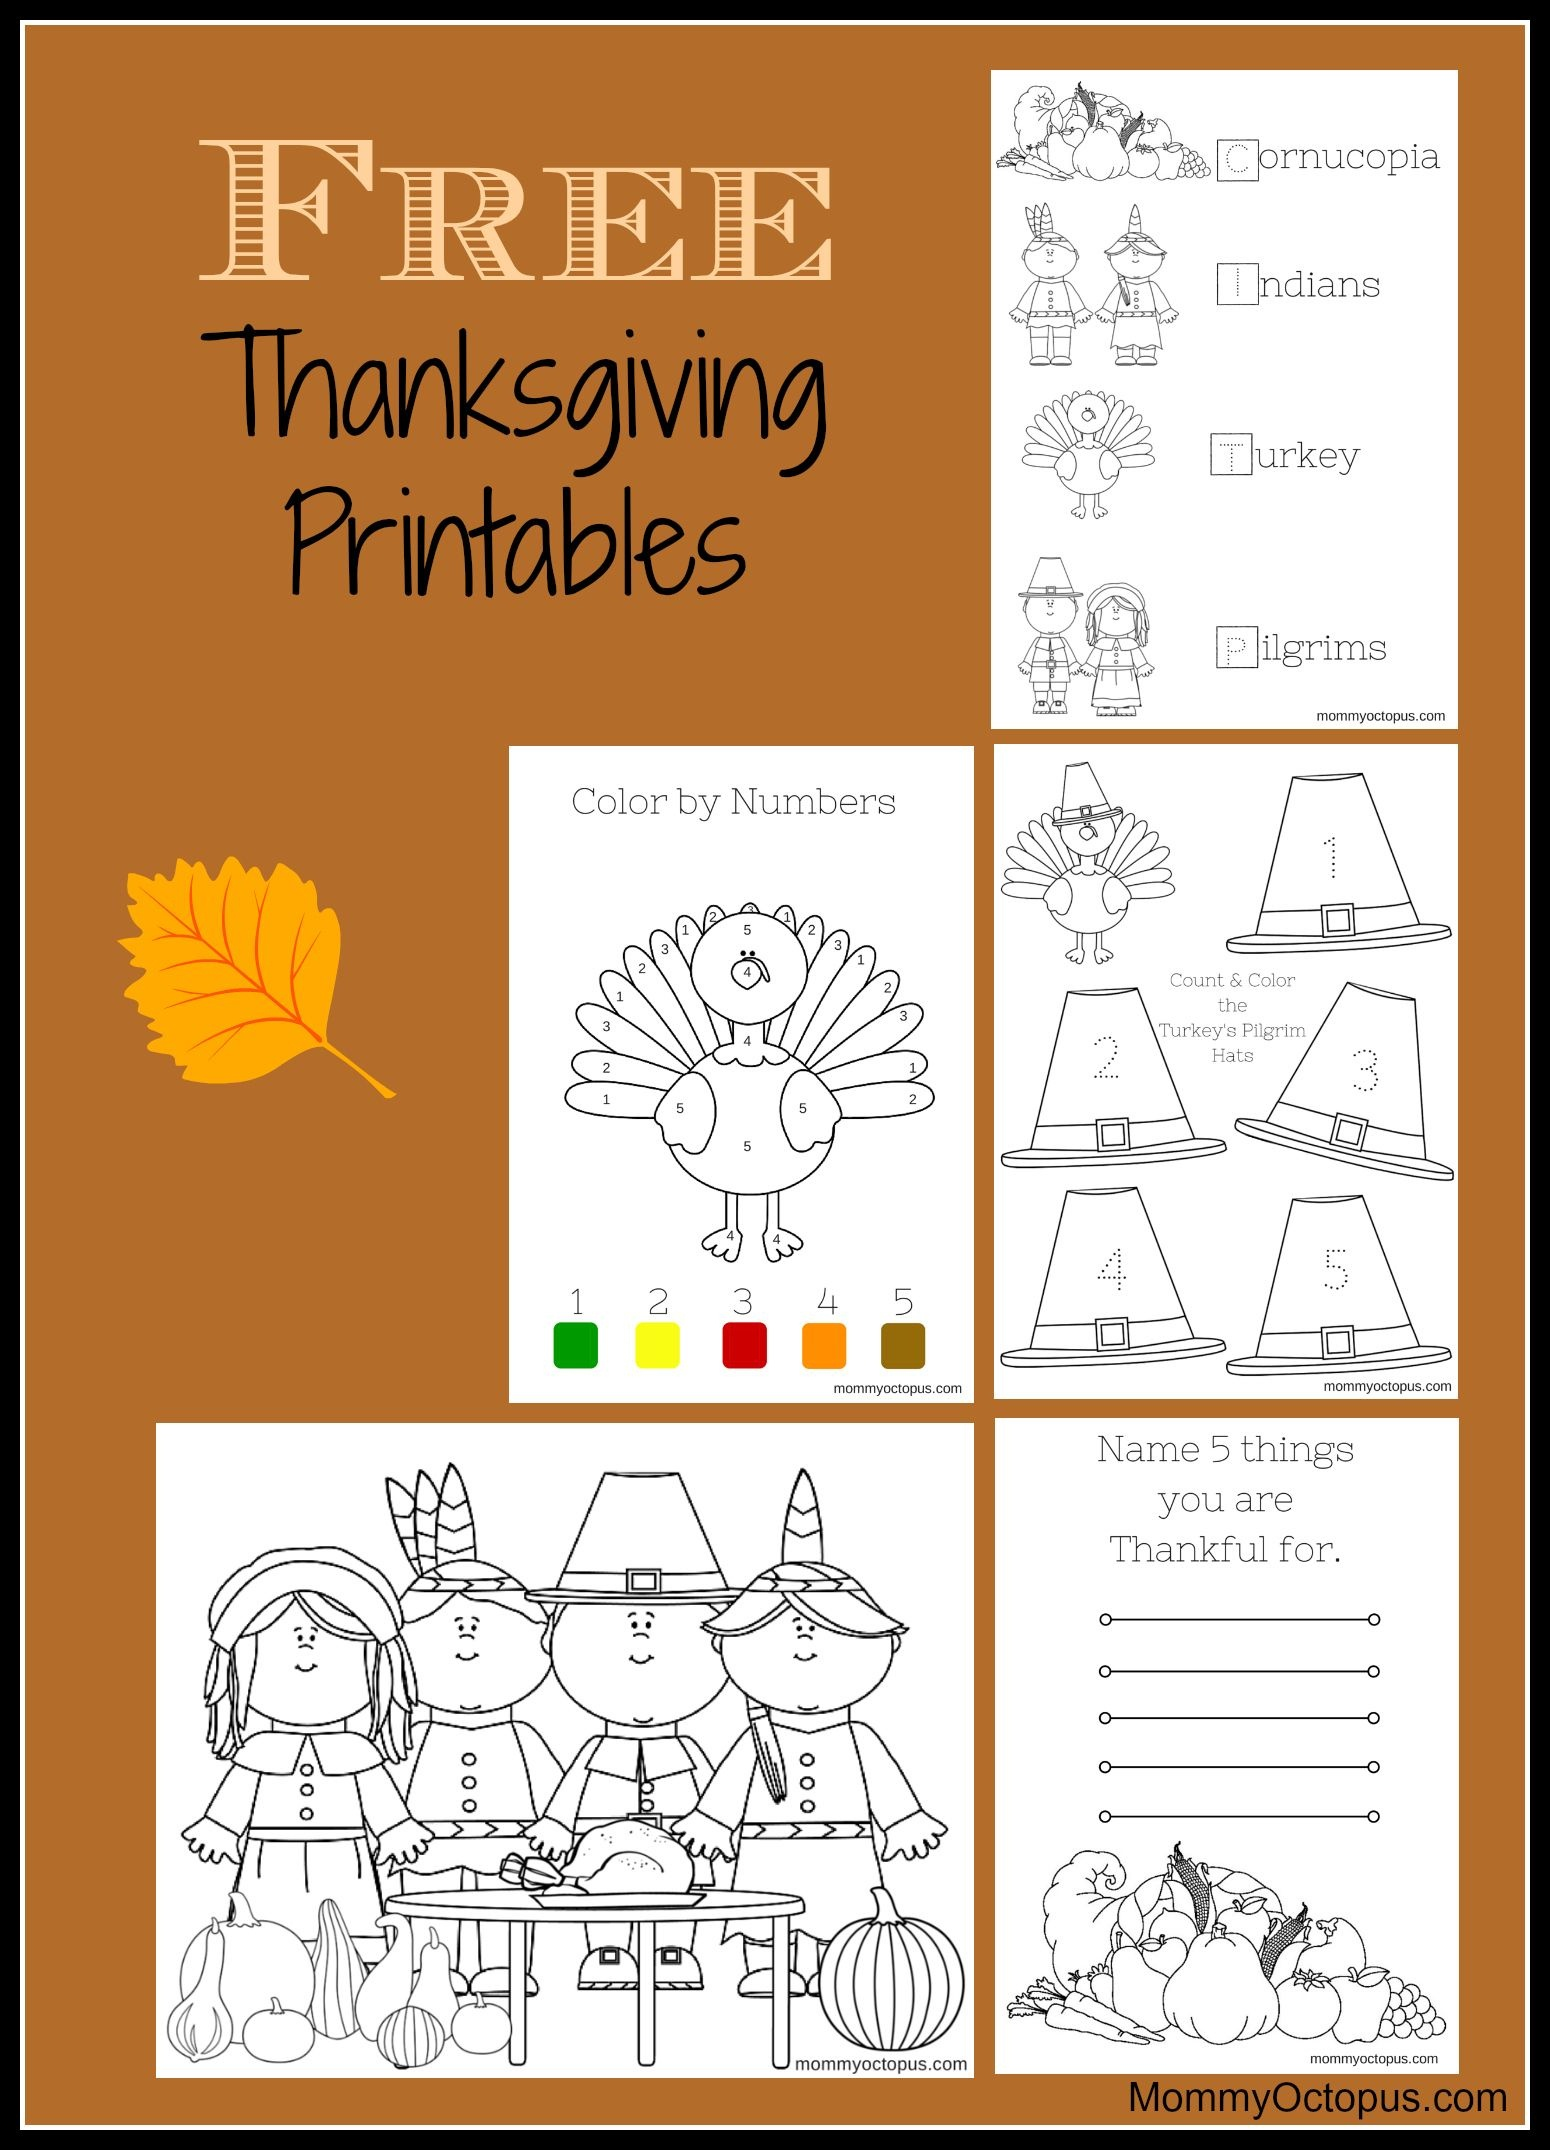 Free Thanksgiving Printable Activity Sheets! | Thanksgiving & Fall - Free Printable Thanksgiving Activities For Preschoolers